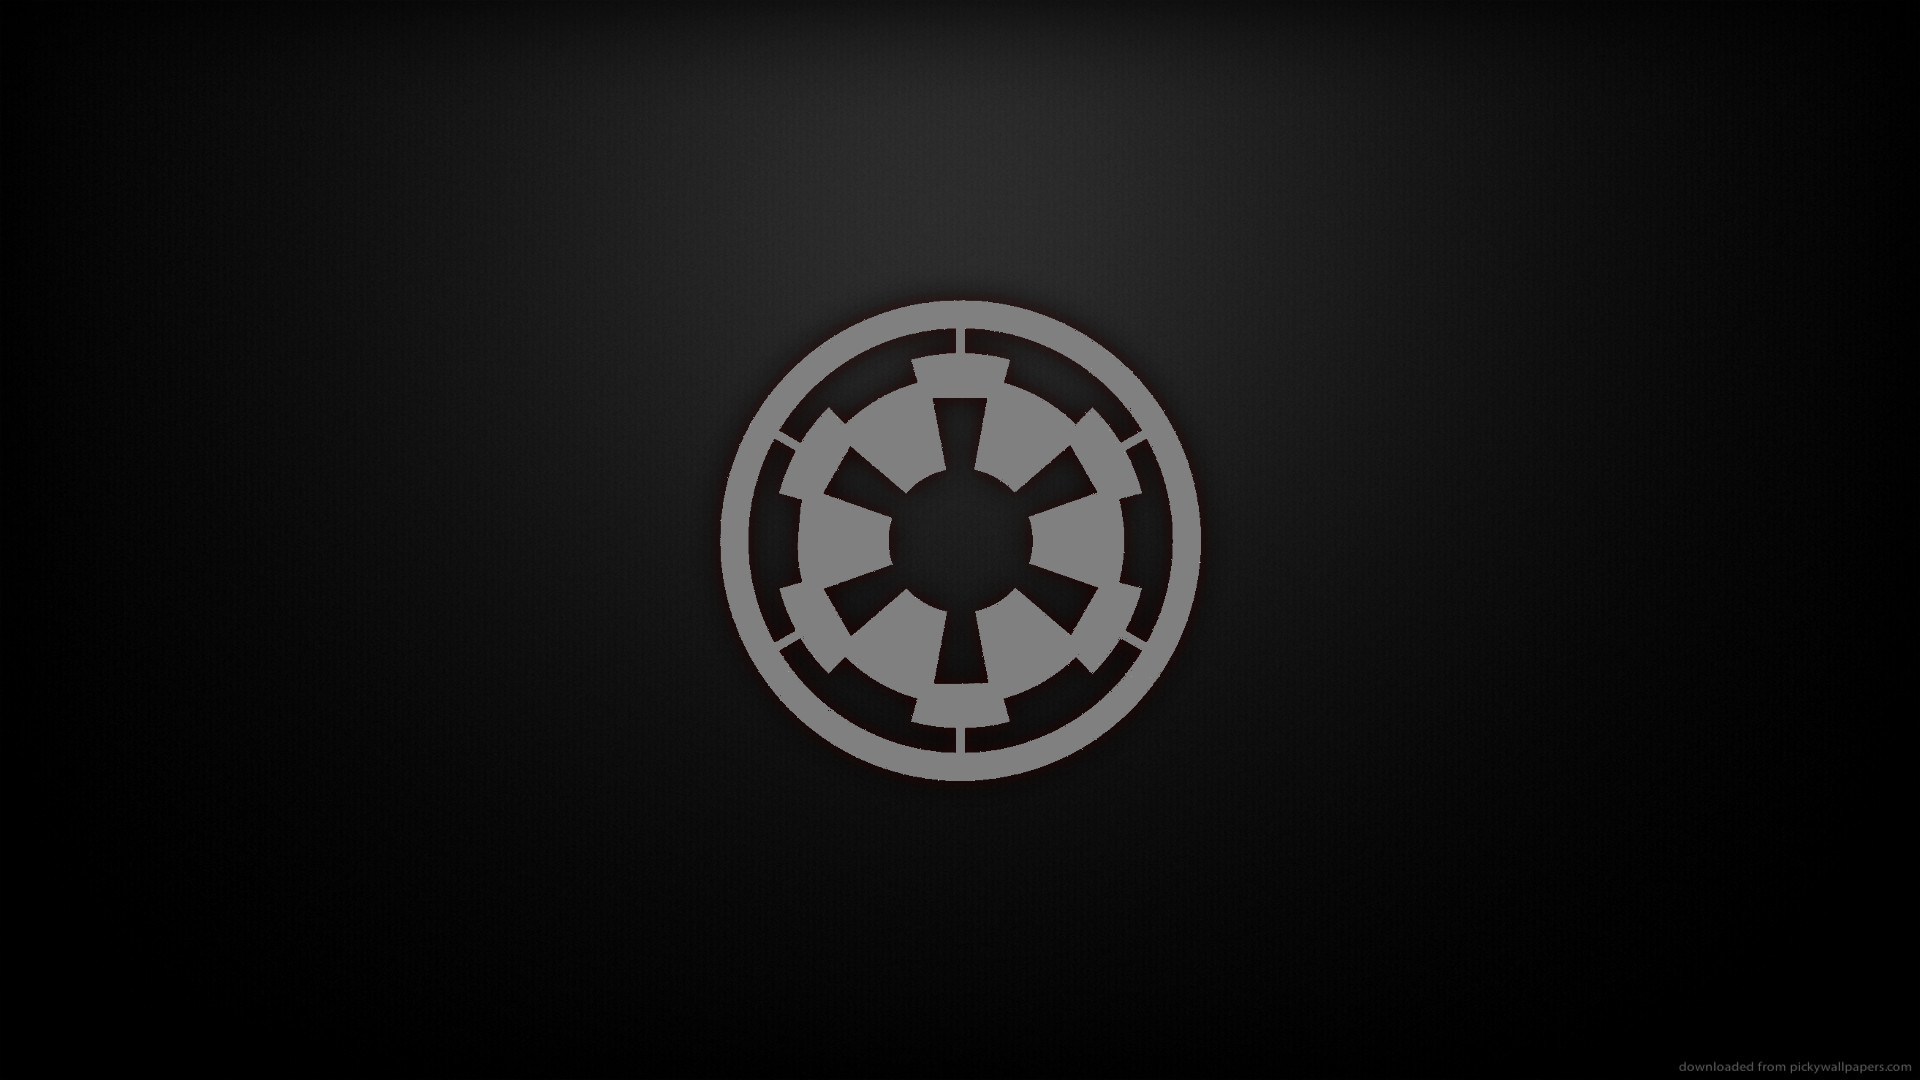 … star wars imperial symbol wallpaper by hd wallpapers daily …